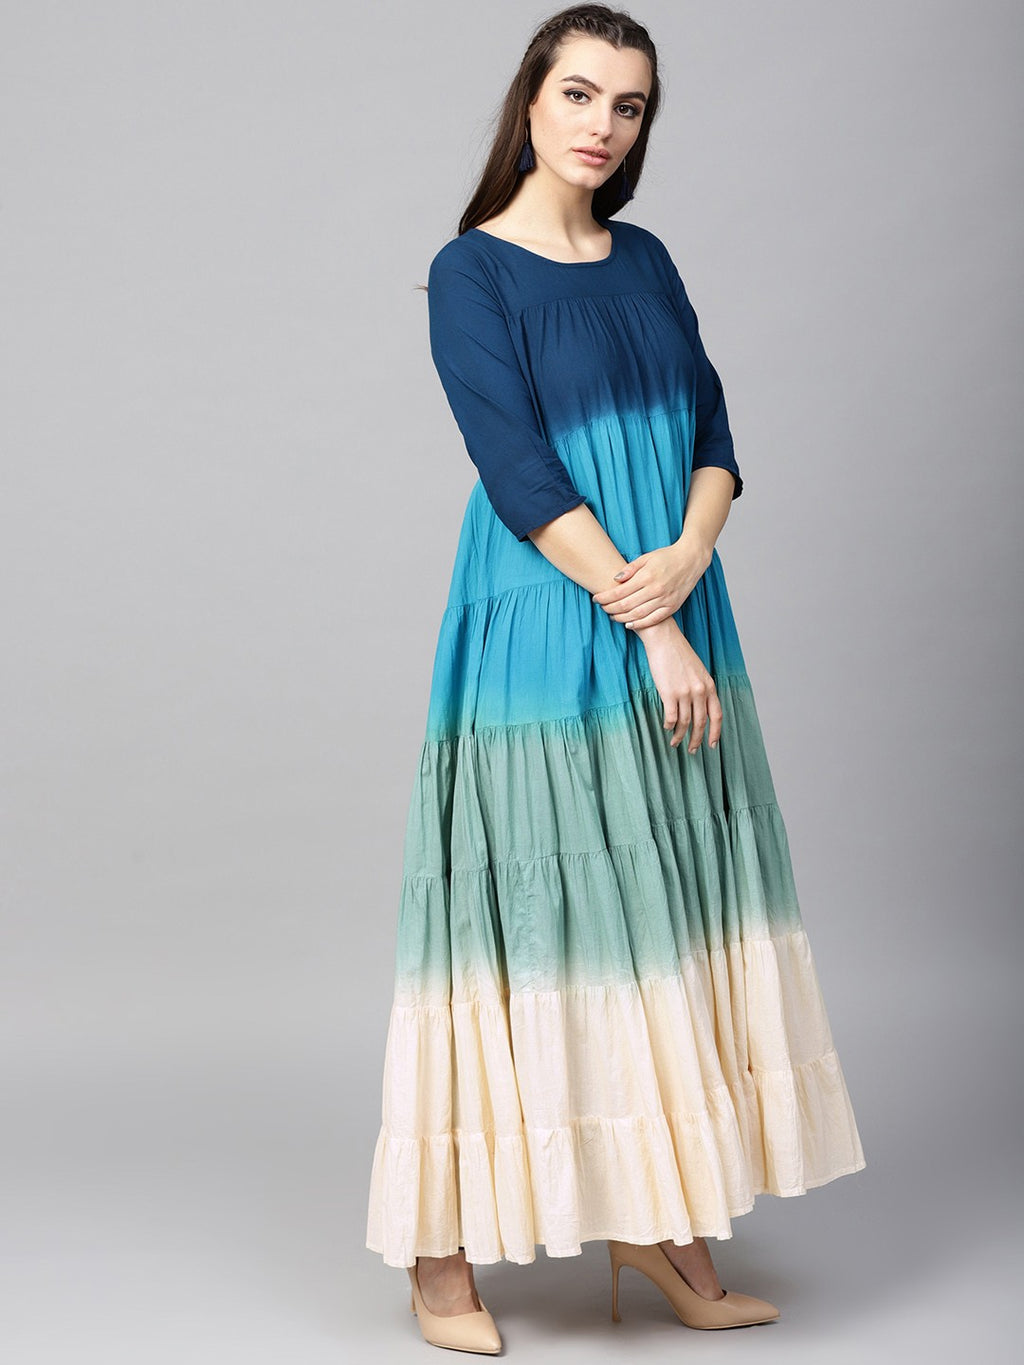 Blue Ombre Print Tiered Flared Anarkali (Fully Stitched) | Znx4ever.com